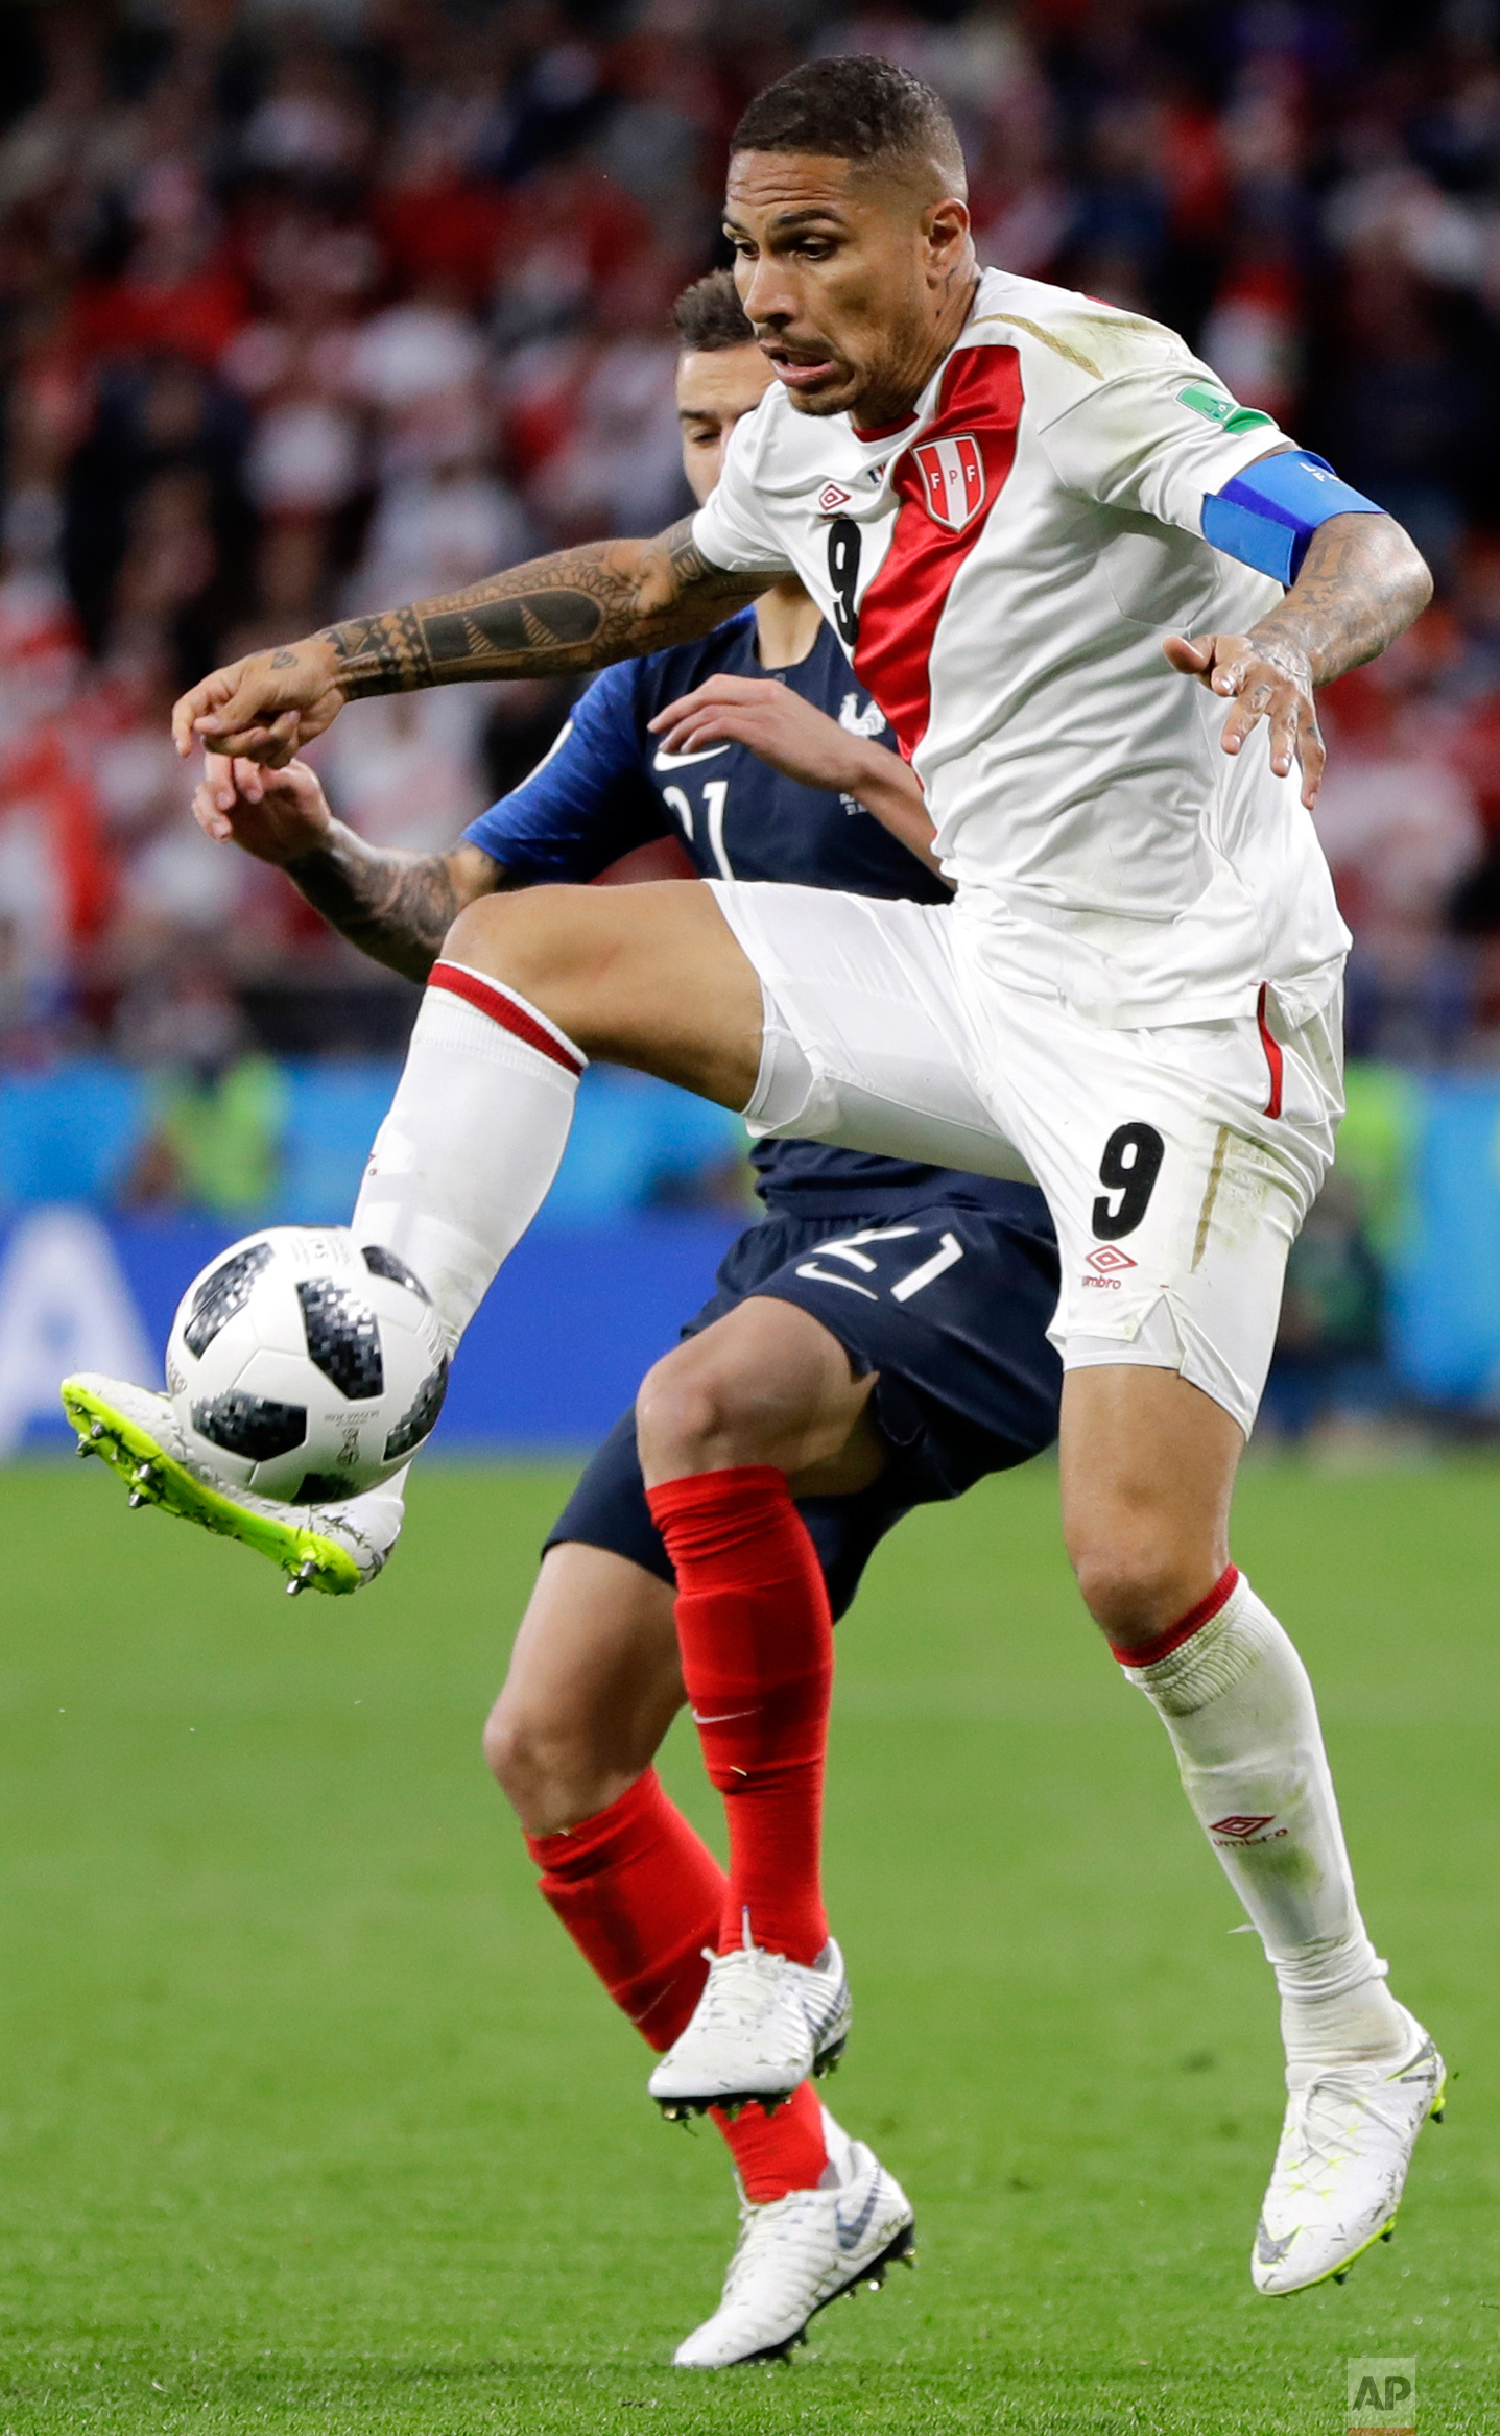 Peru's Paolo Guerrero is challenged by France's Lucas Hernandez, background, during the group C match between France and Peru at the 2018 soccer World Cup in the Yekaterinburg Arena in Yekaterinburg, Russia, Thursday, June 21, 2018. (AP Photo/Natacha Pisarenko)